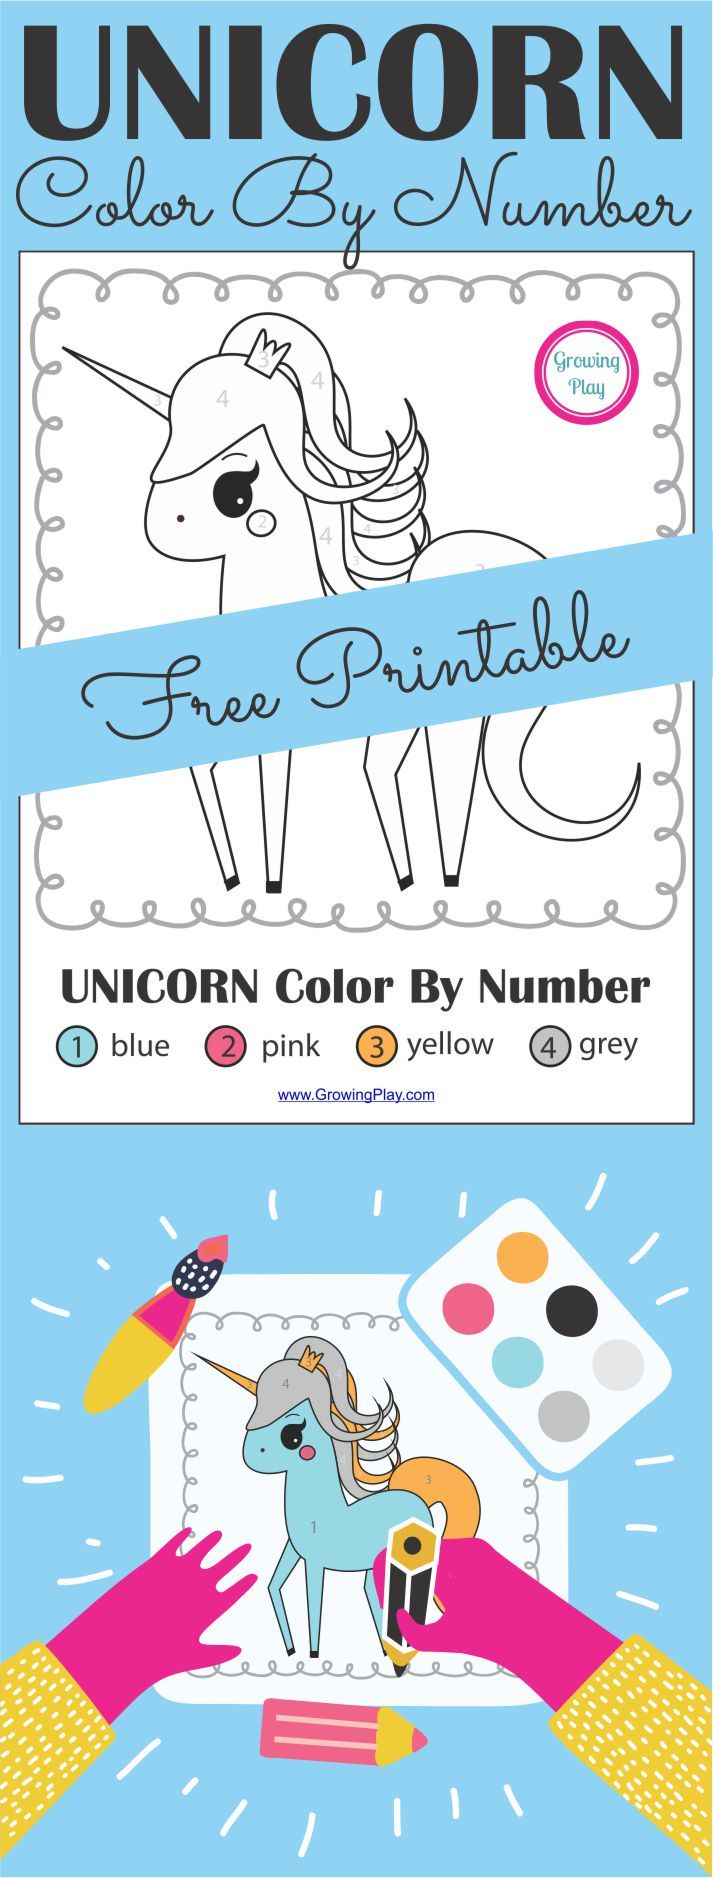 Unicorn Color By Number Freebie | Free printable, Unicorns and Number